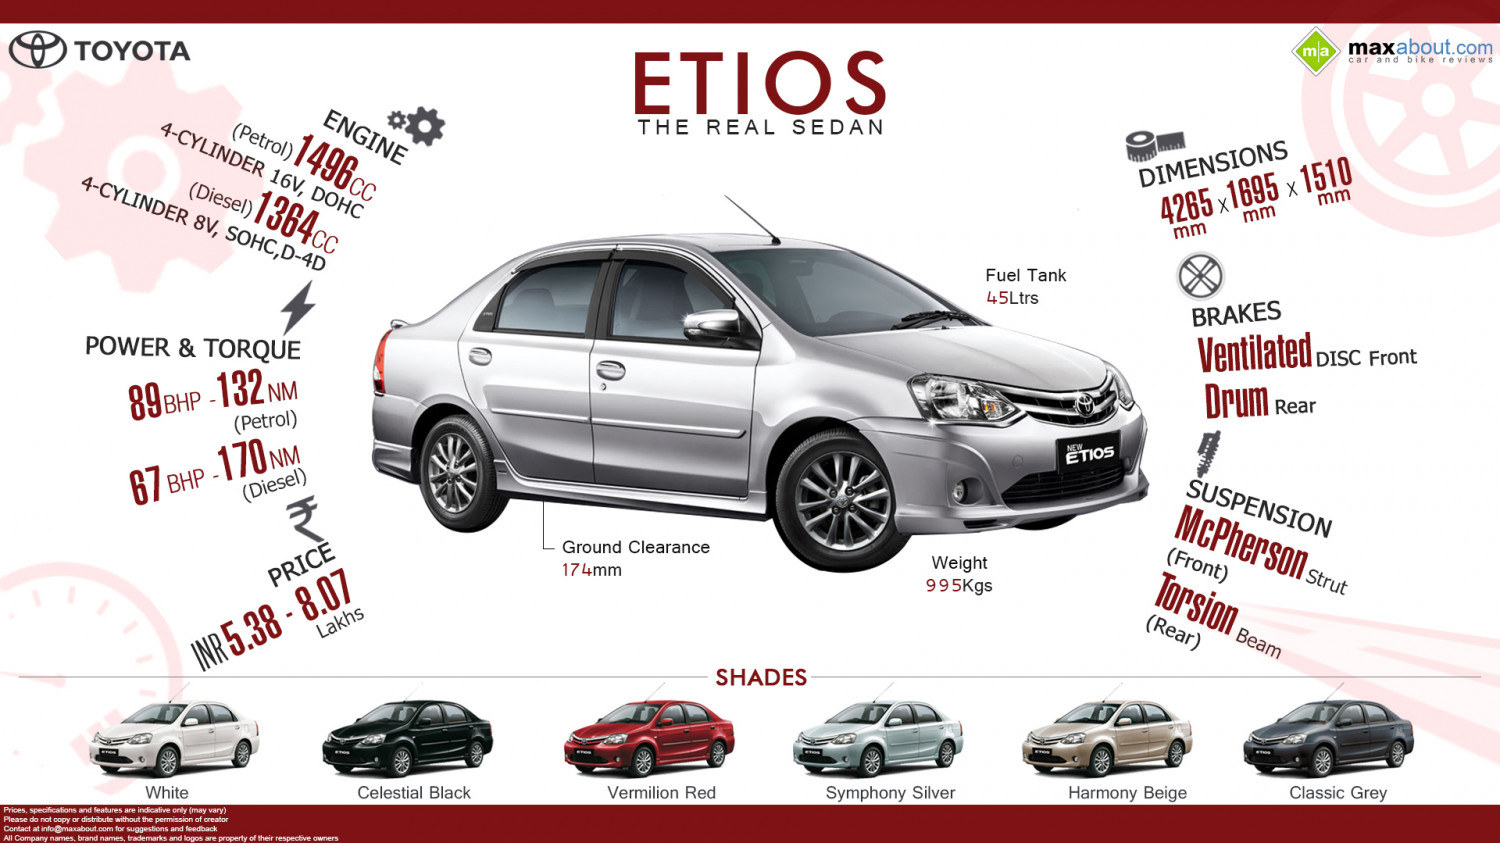 Toyota Etios - The Real Sedan Infographic